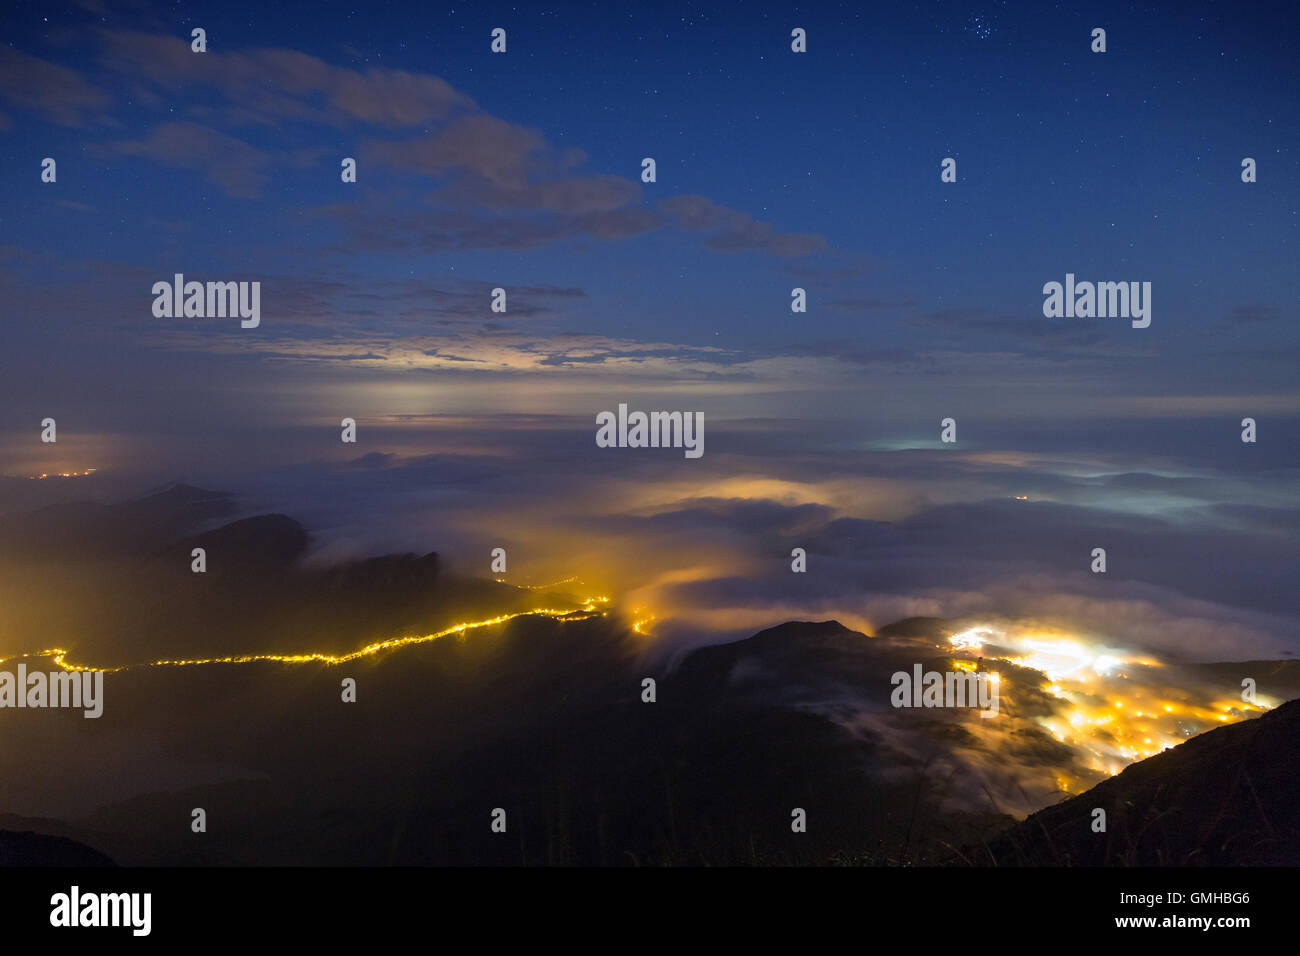 Scenic view from the Lantau Peak (the second highest peak in Hong Kong, China (934m)) at night. Copy space. - Stock Image